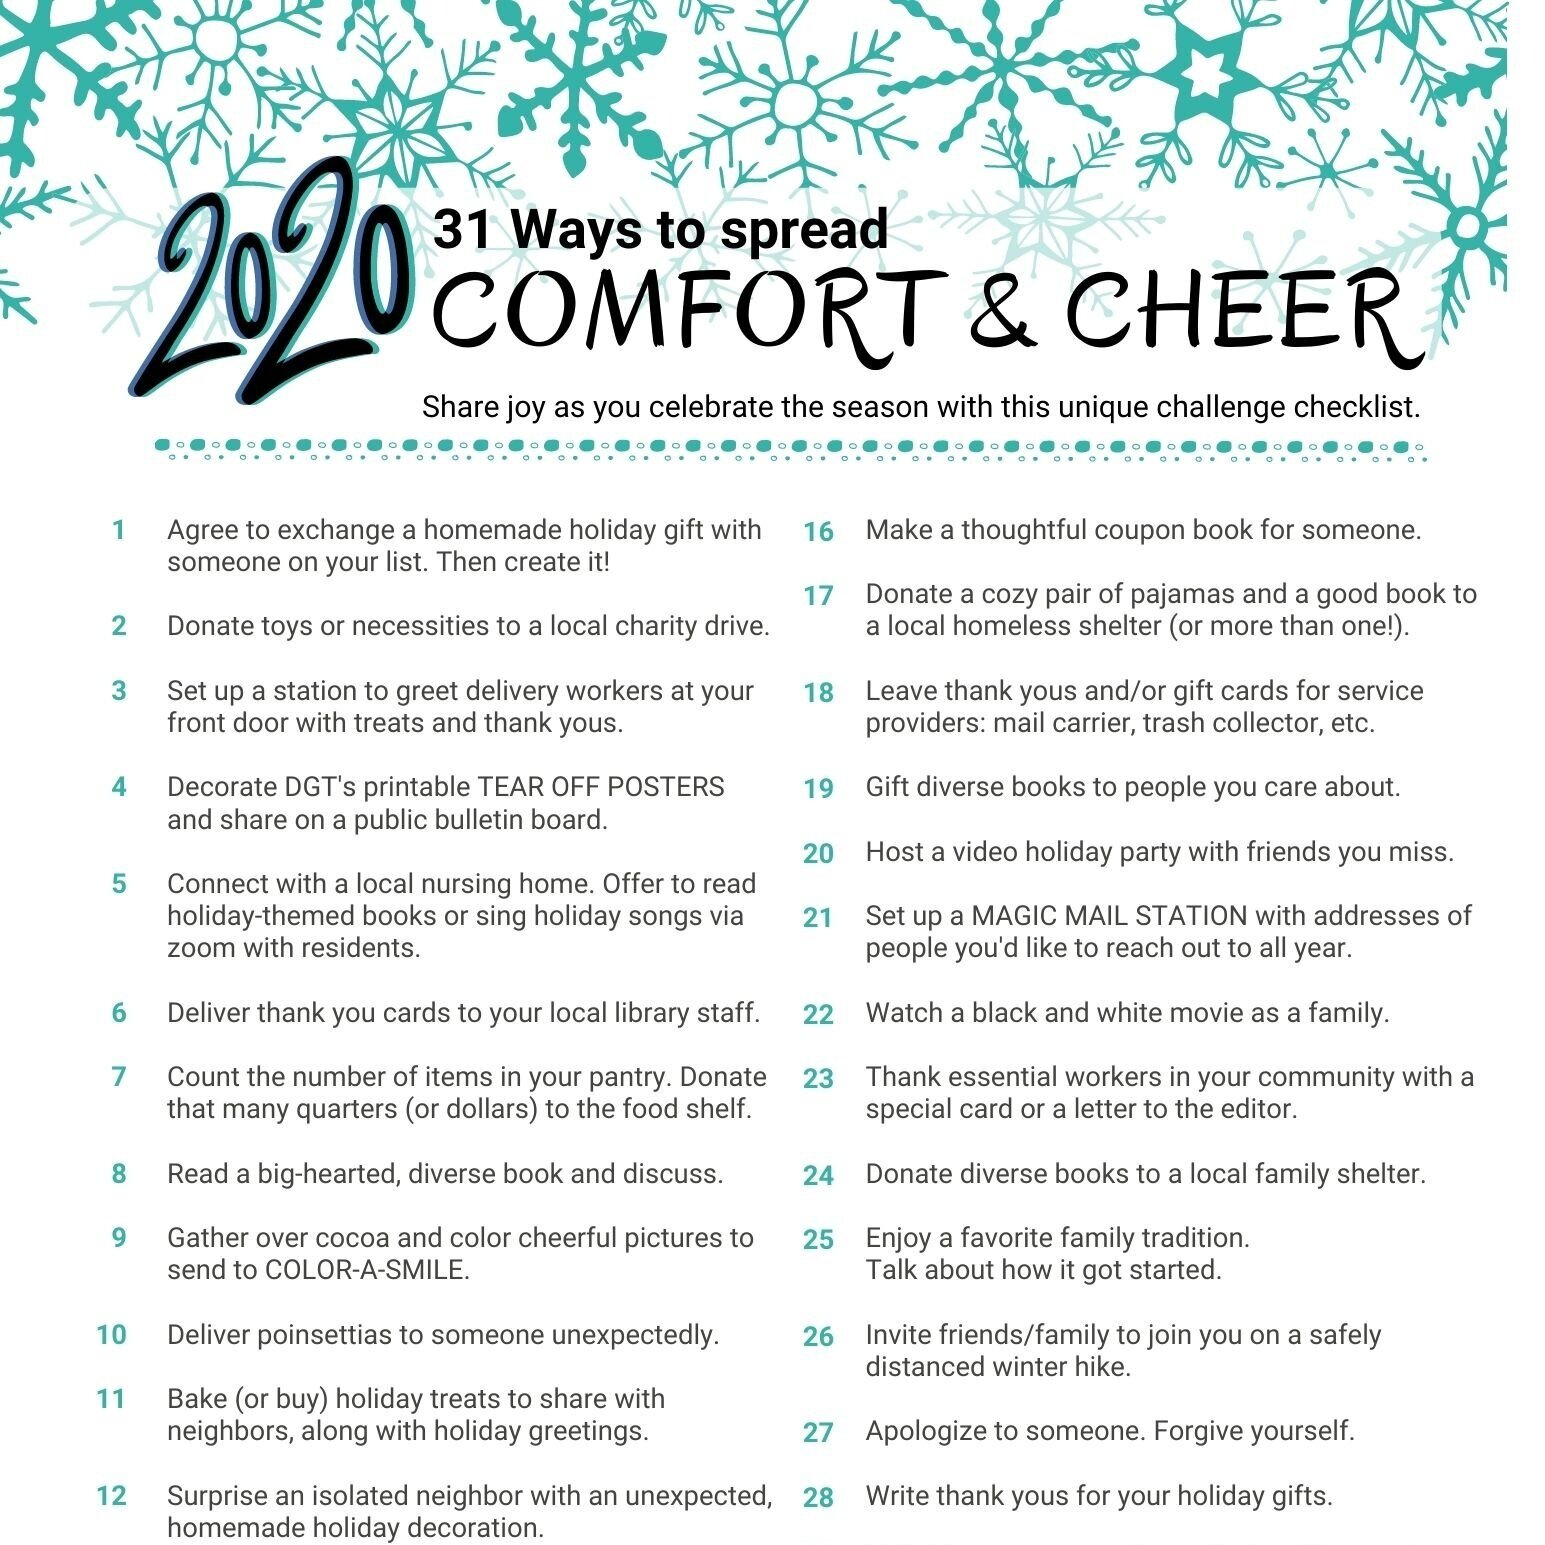 2020 Holiday Kindness Countdown